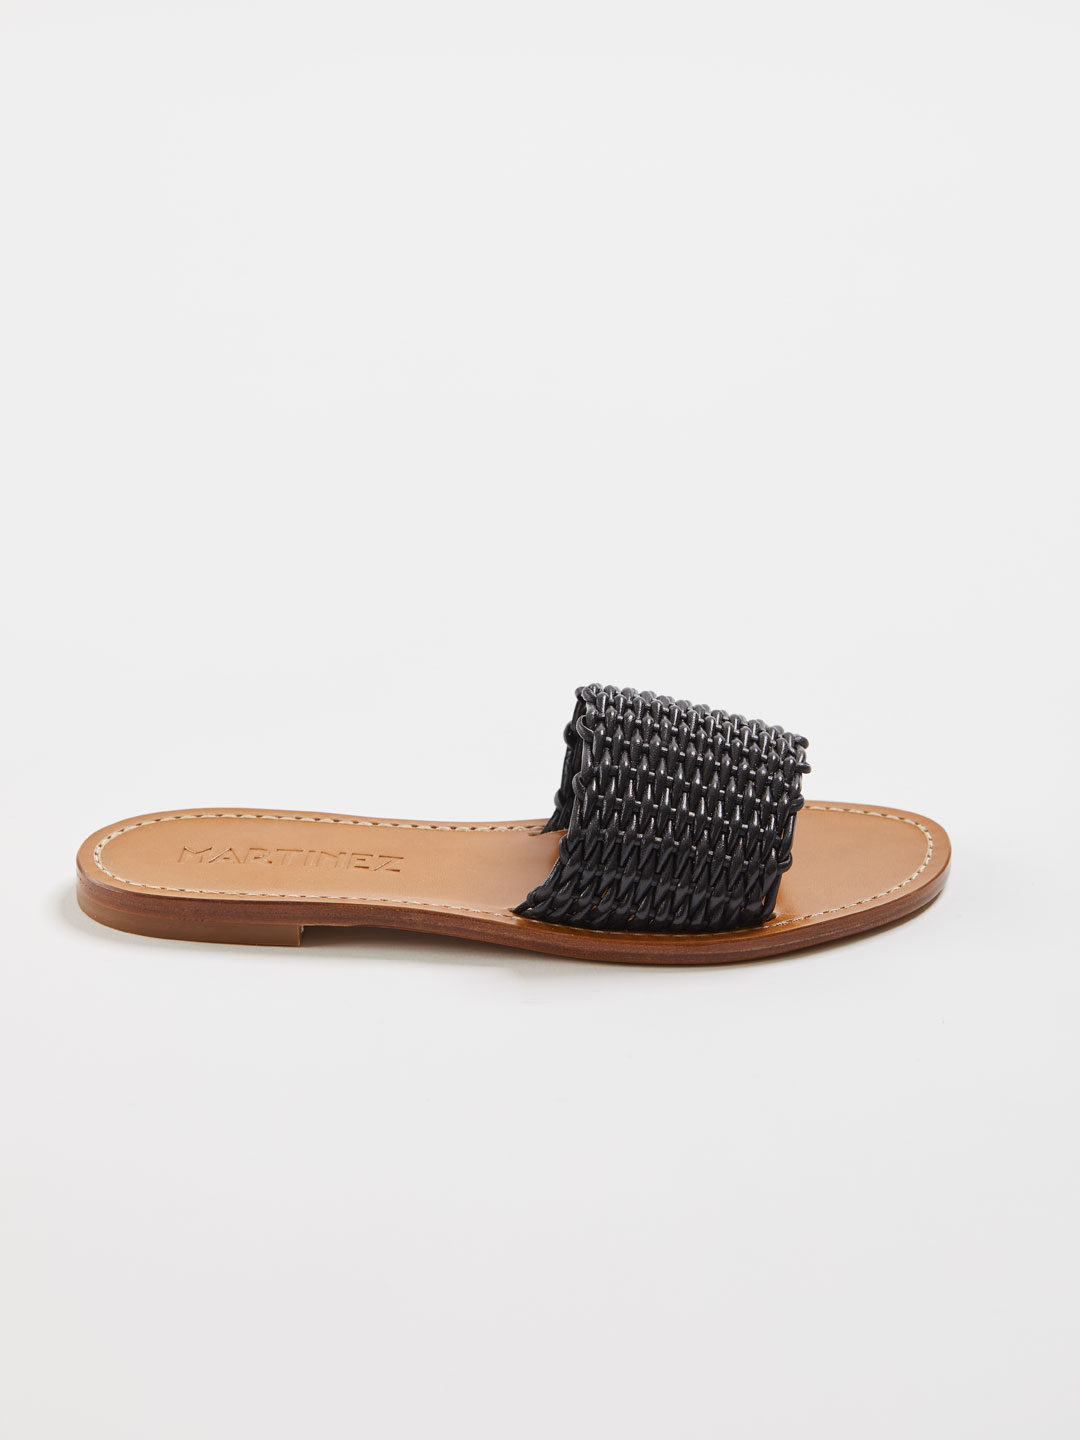 PLAYA CESTA Woven Flat Sandals - Black